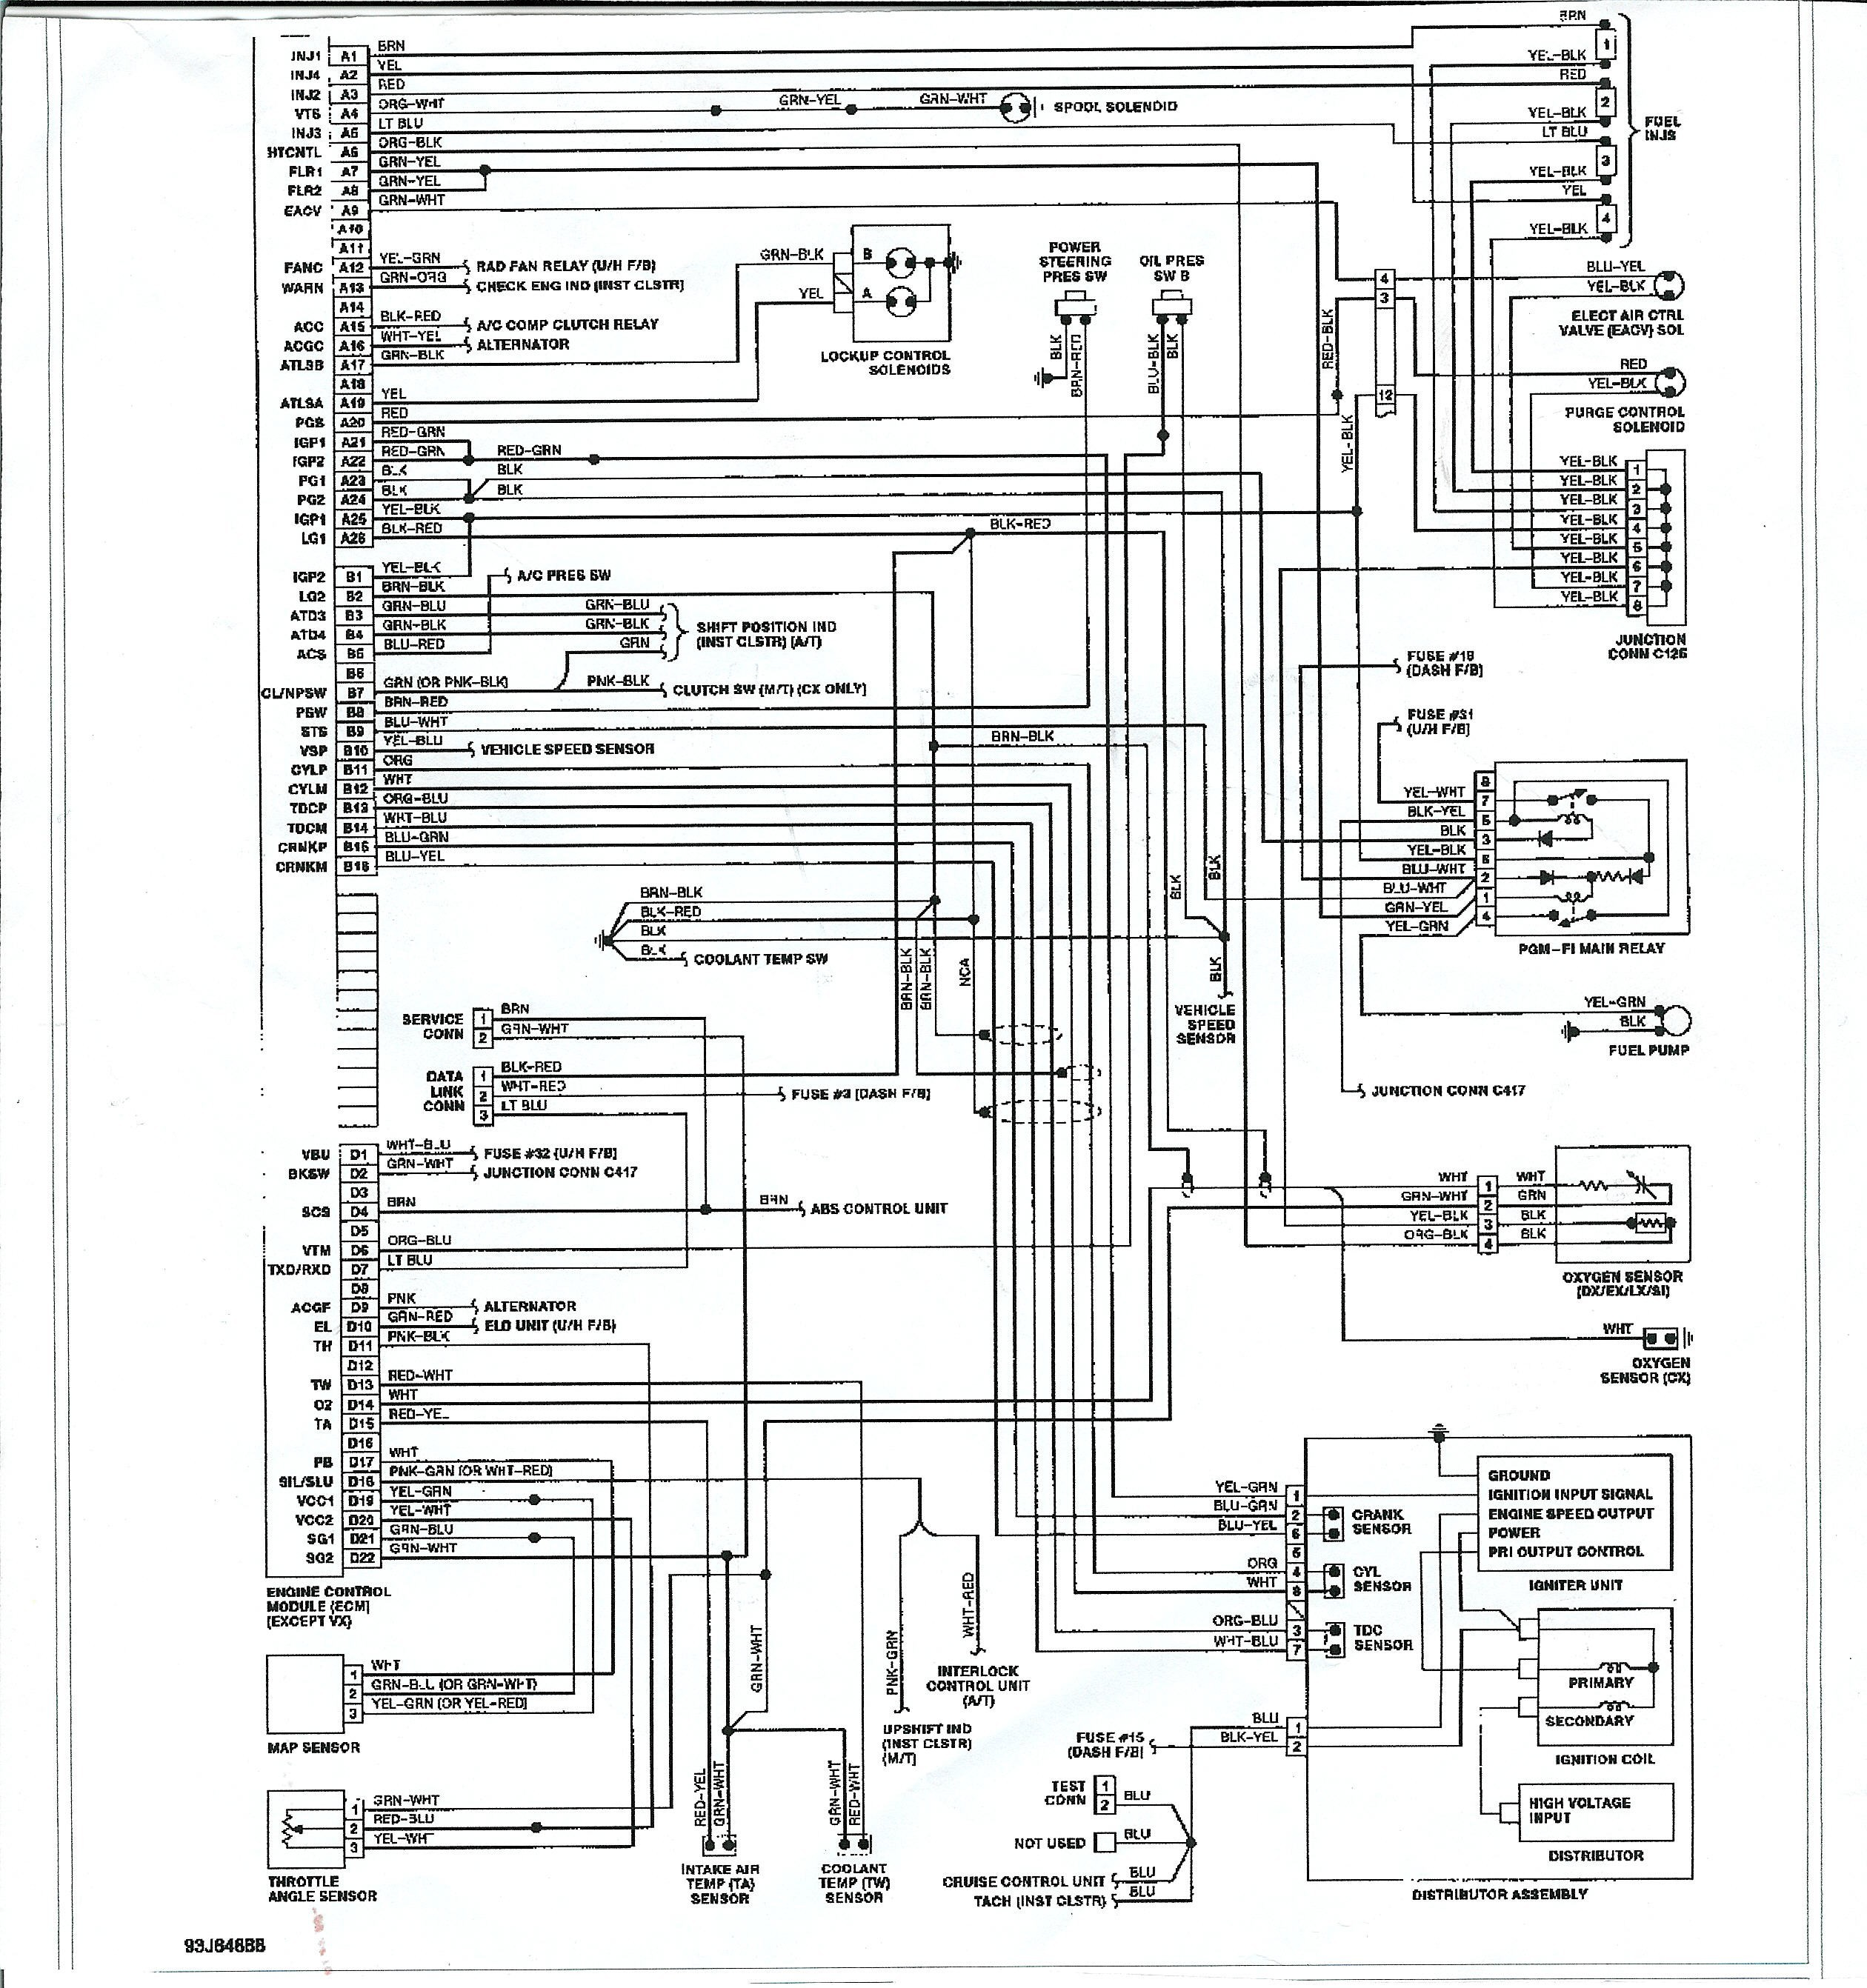 vtec wiring diagram obd2 wire center u2022 rh malltecho pw vtec wiring diagram obd2b OBD1 Connector Diagram